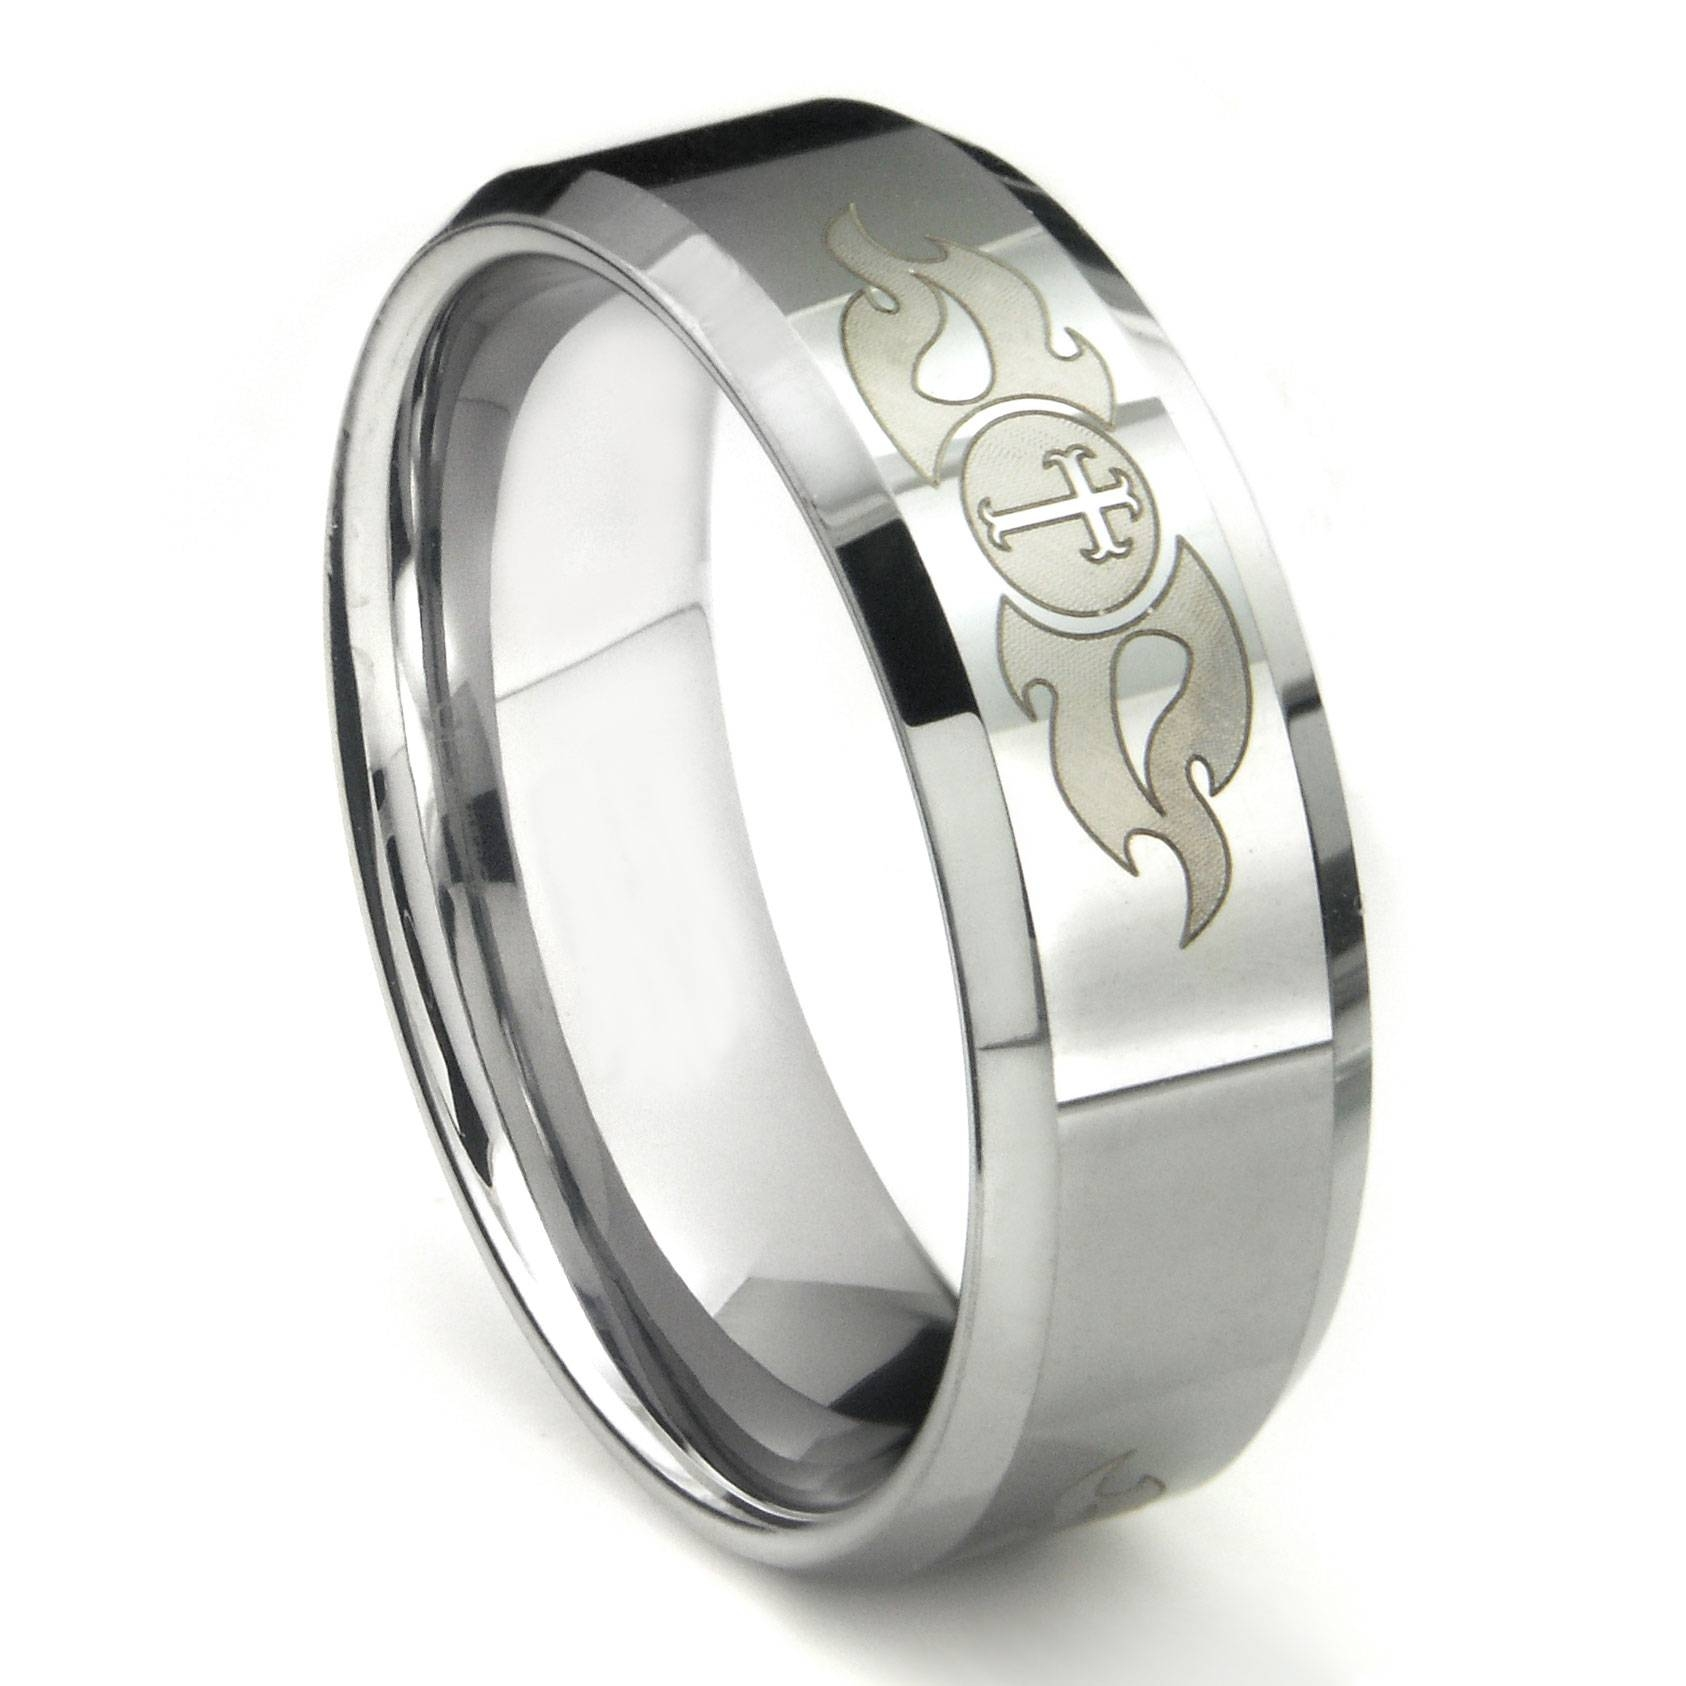 Tungsten Carbide Laser Engraved Fiery Cross Wedding Band Ring Throughout Engravable Titanium Wedding Bands (View 12 of 15)